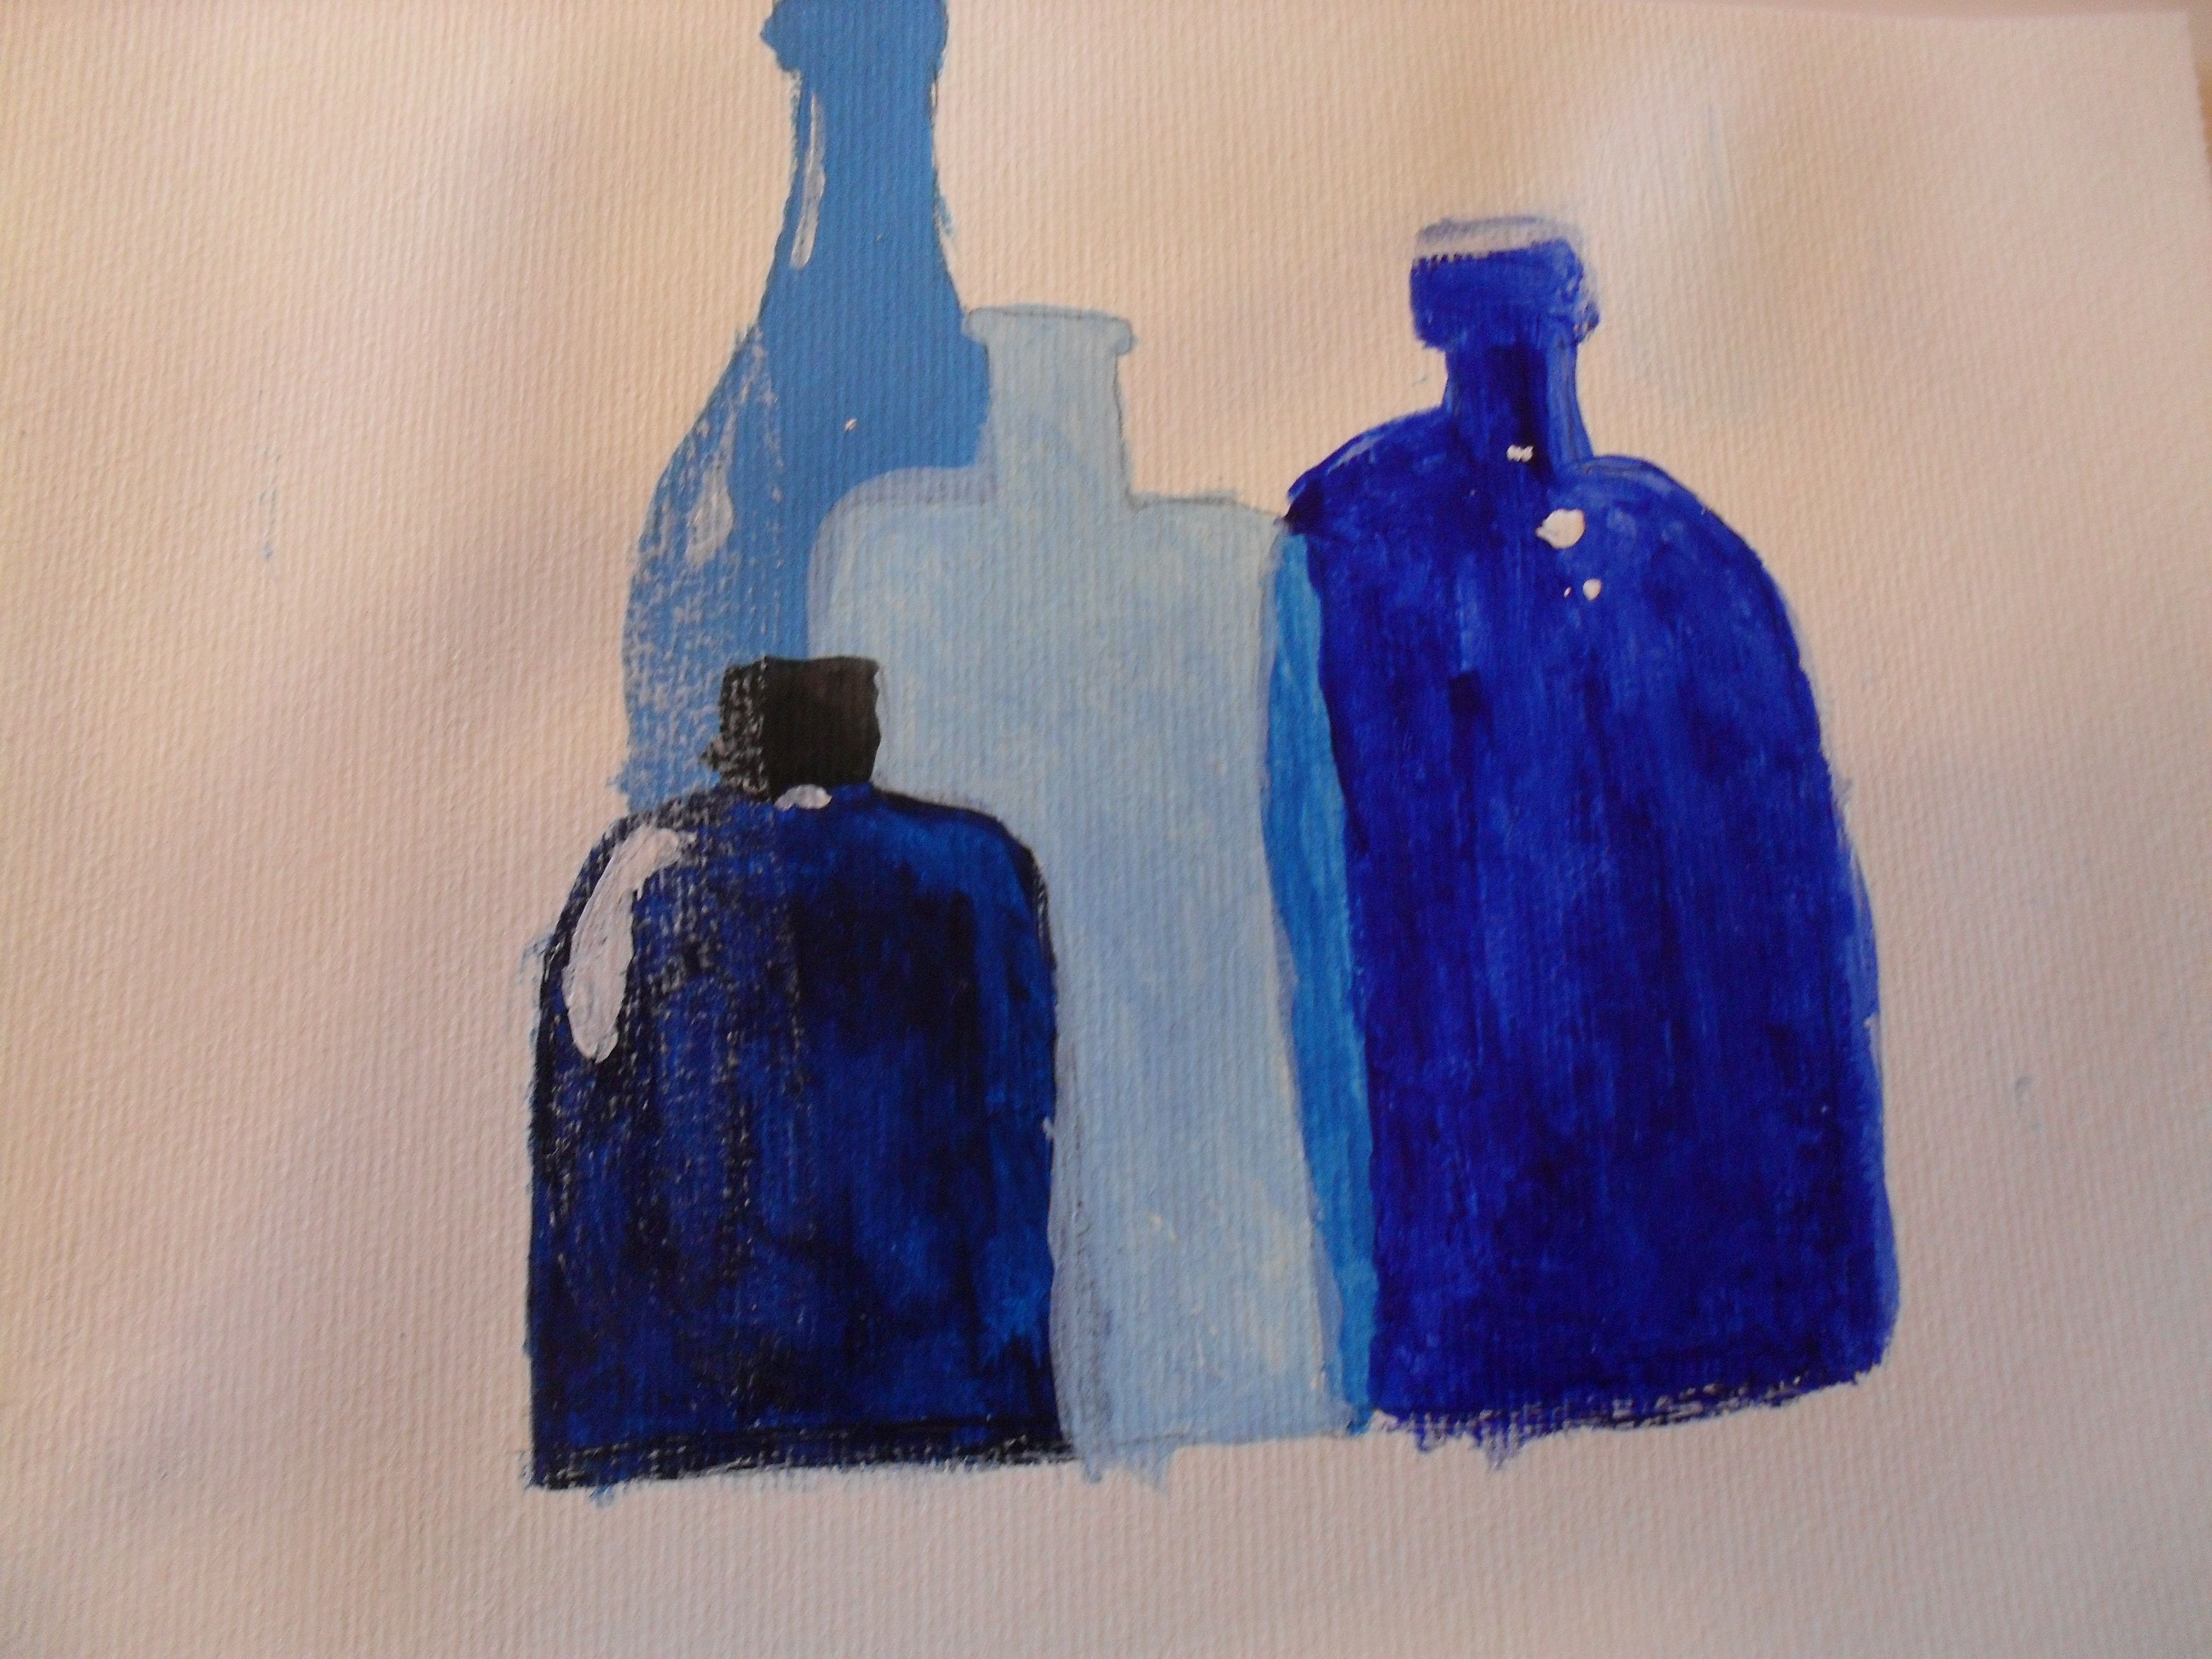 Blue bottles painted in Acrylic!